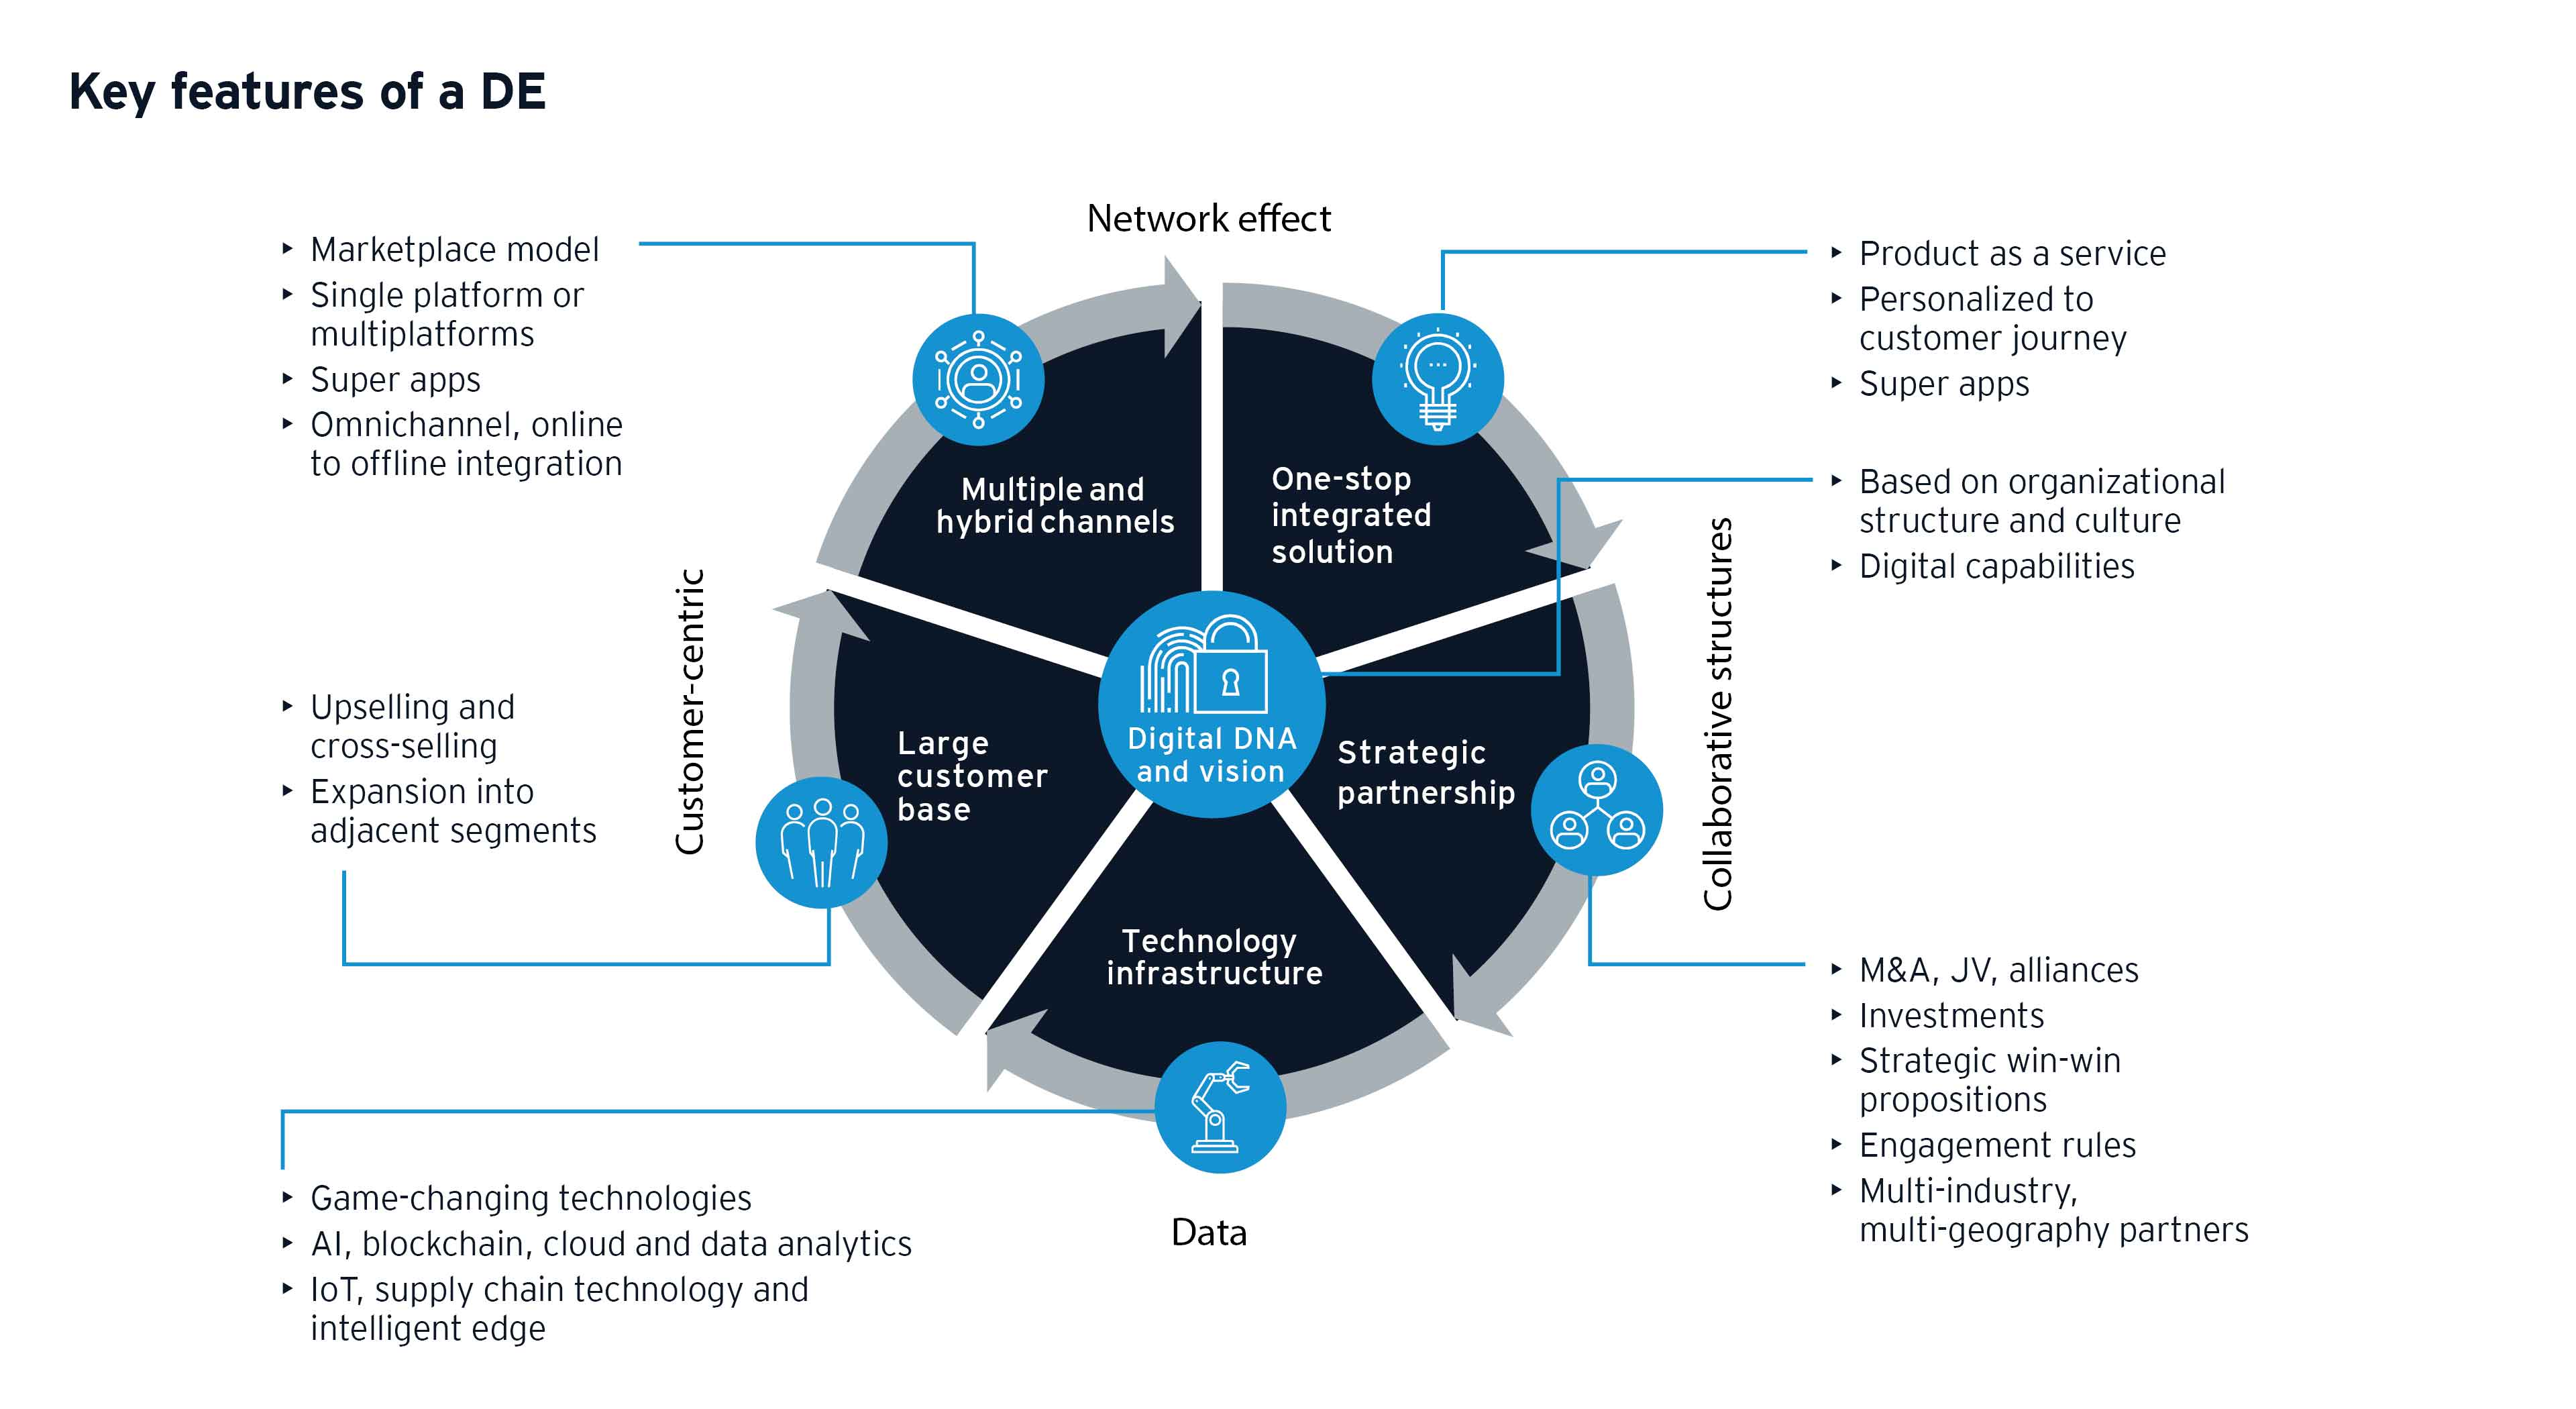 ey-how-to-build-successful-digital-ecosystems-in-southeast-asia-diagram-1-v2